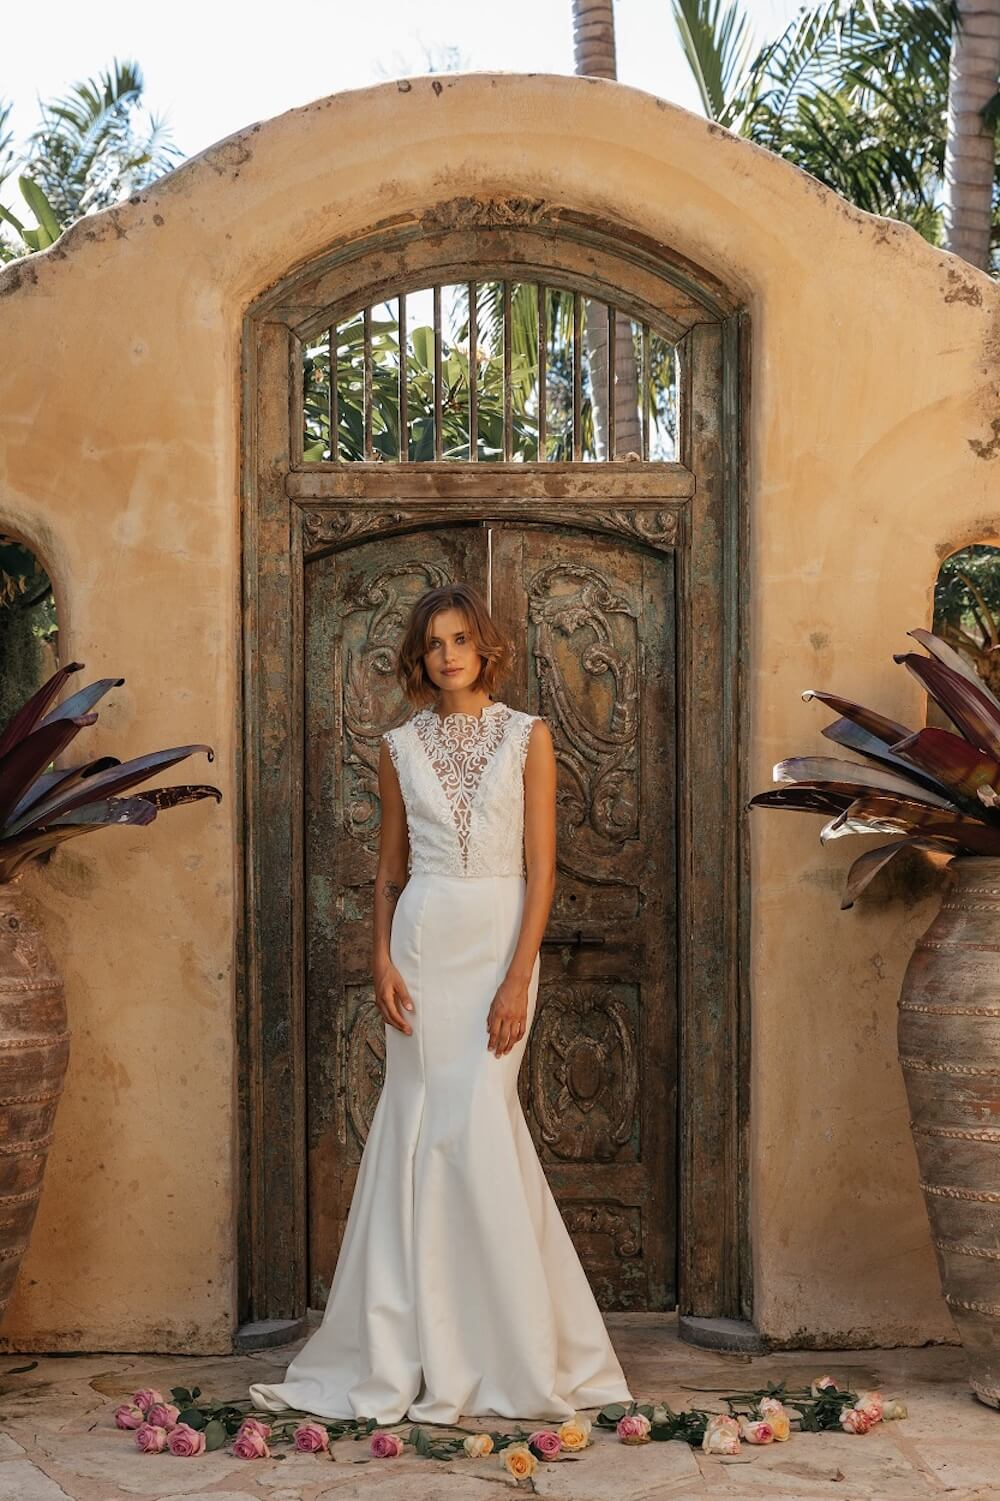 Reverie wedding dress by Jennifer Go Bridal featured on LOVE FIND CO.